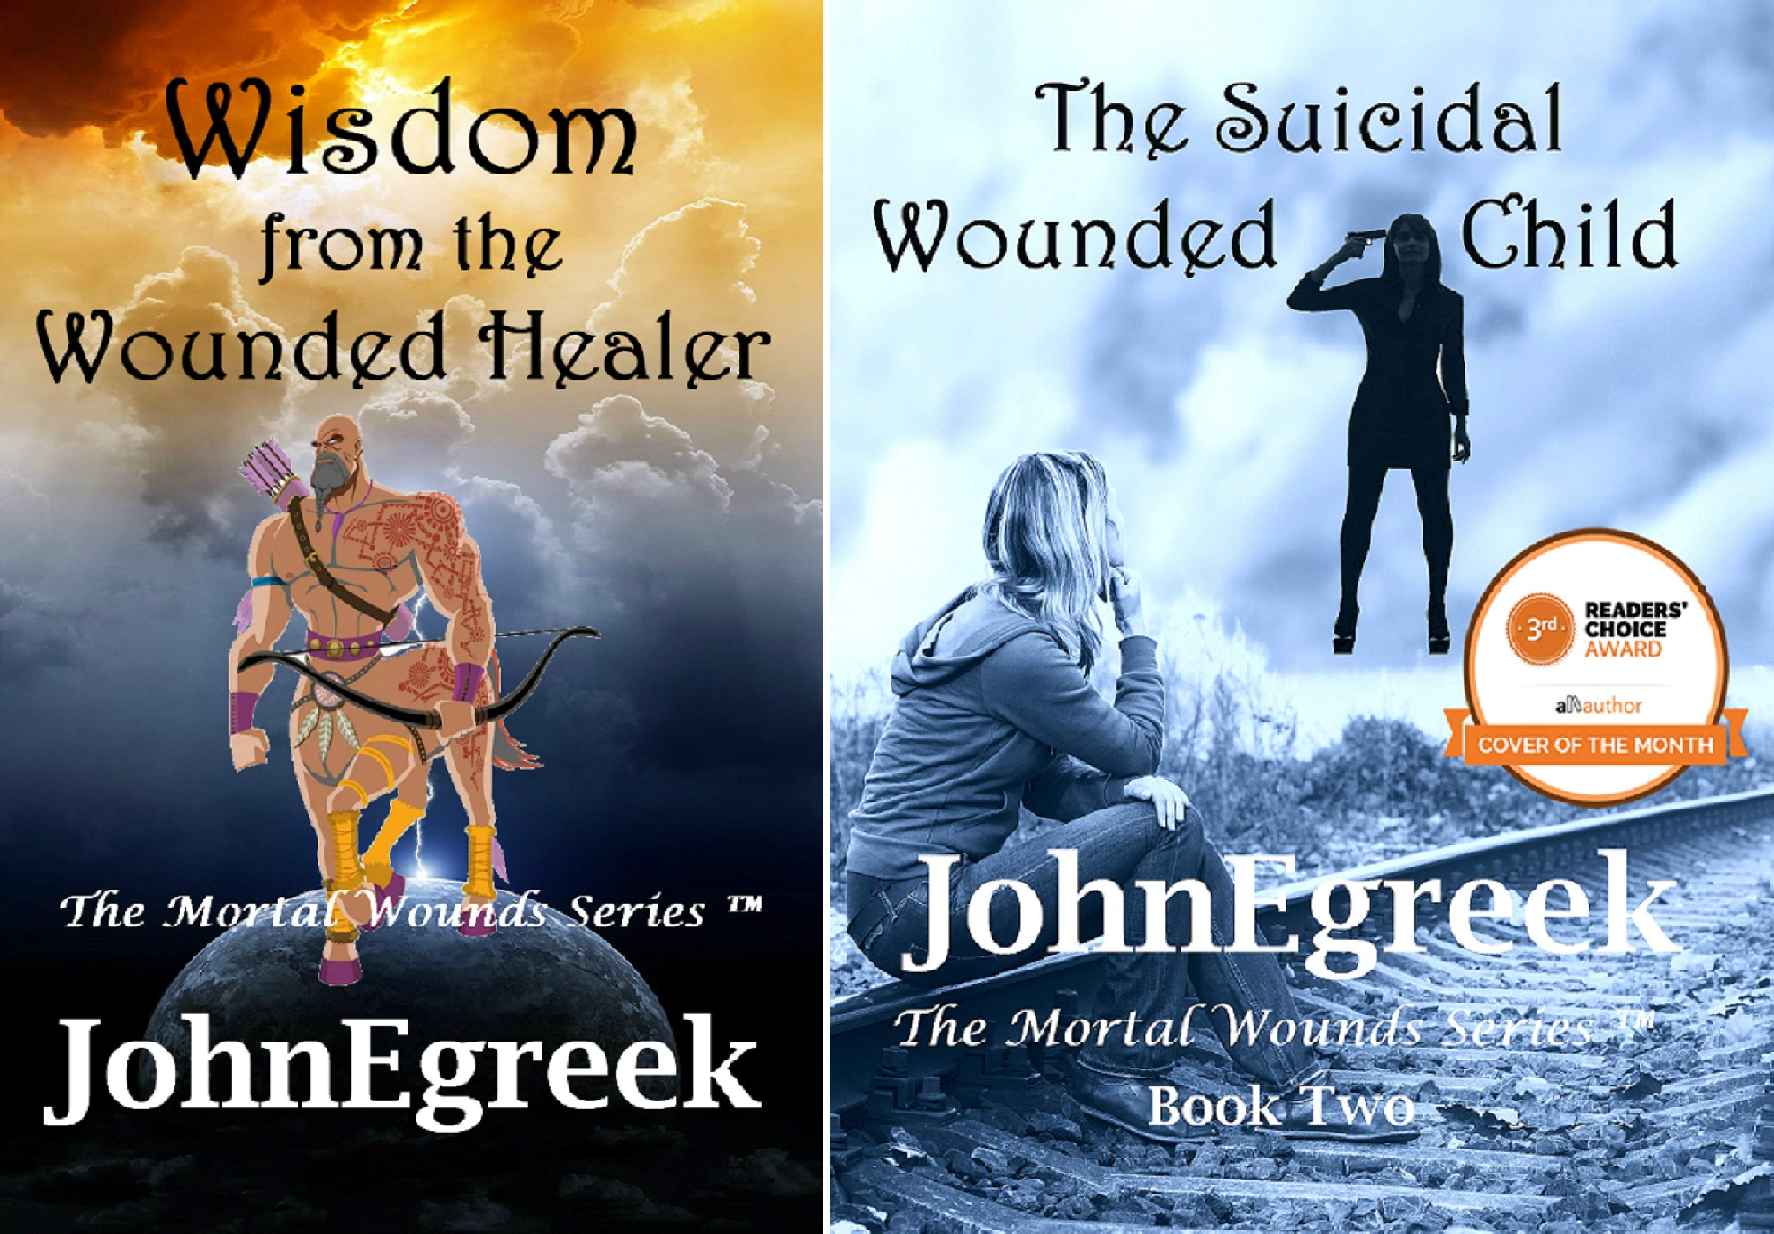 The Mortal Wounds Series ™ (2 Book Series)